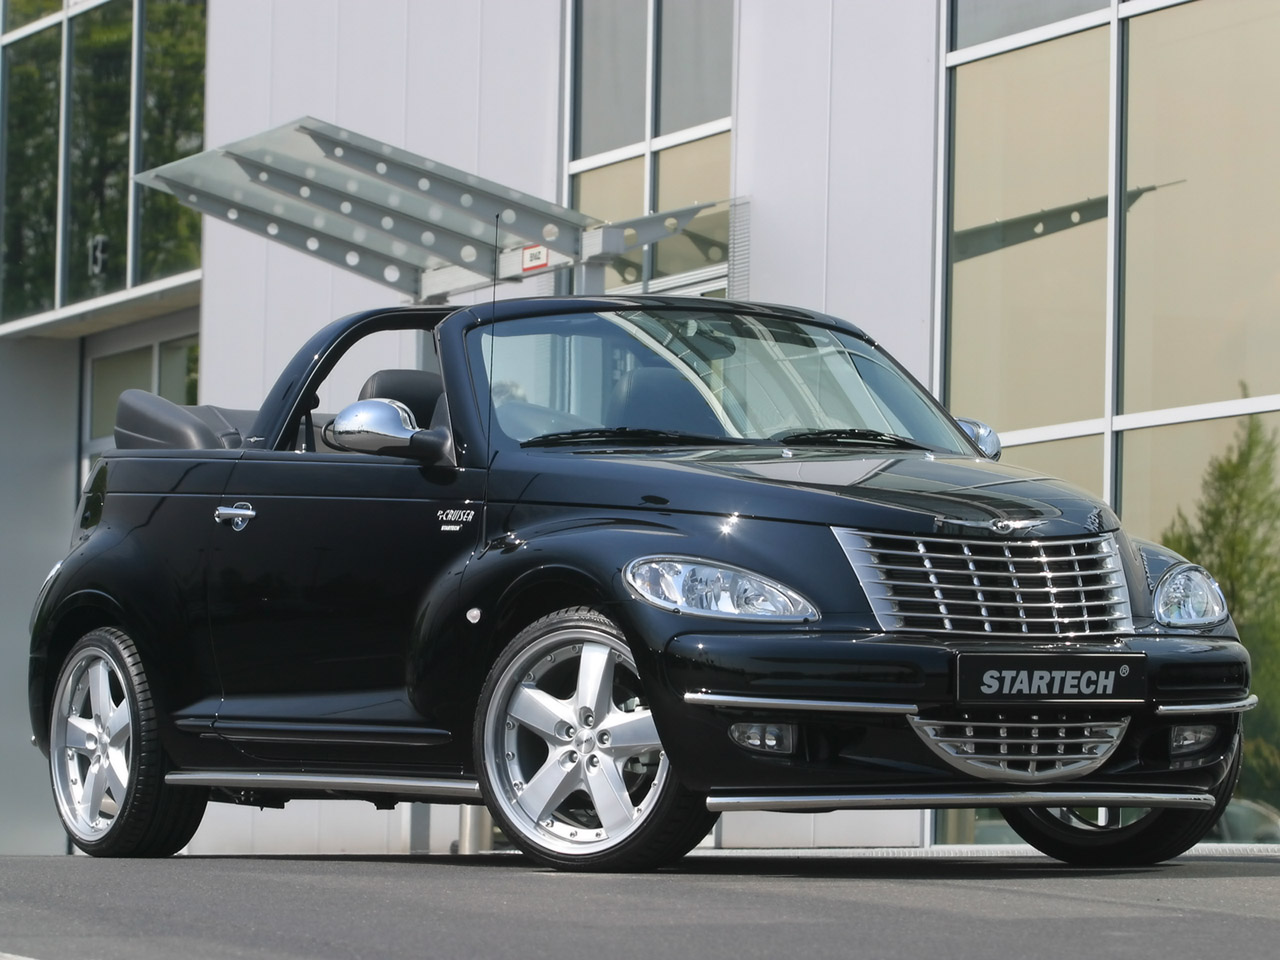 chrysler pt cruiser cabrio photos 6 on better parts ltd. Black Bedroom Furniture Sets. Home Design Ideas